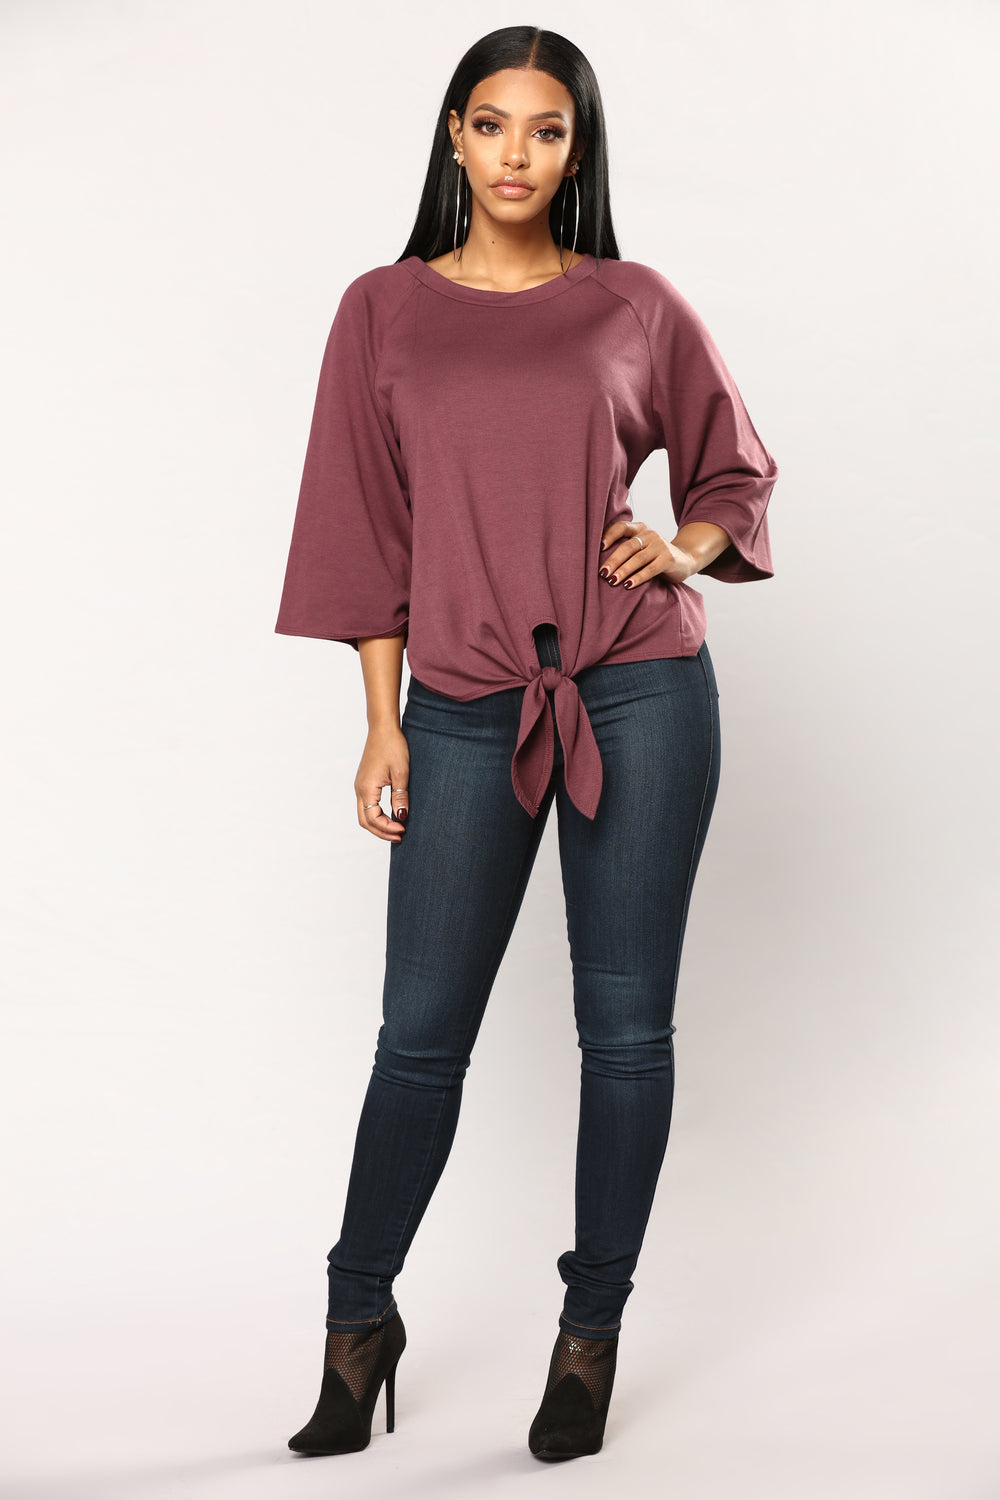 Tying The Knot Top - Marsala